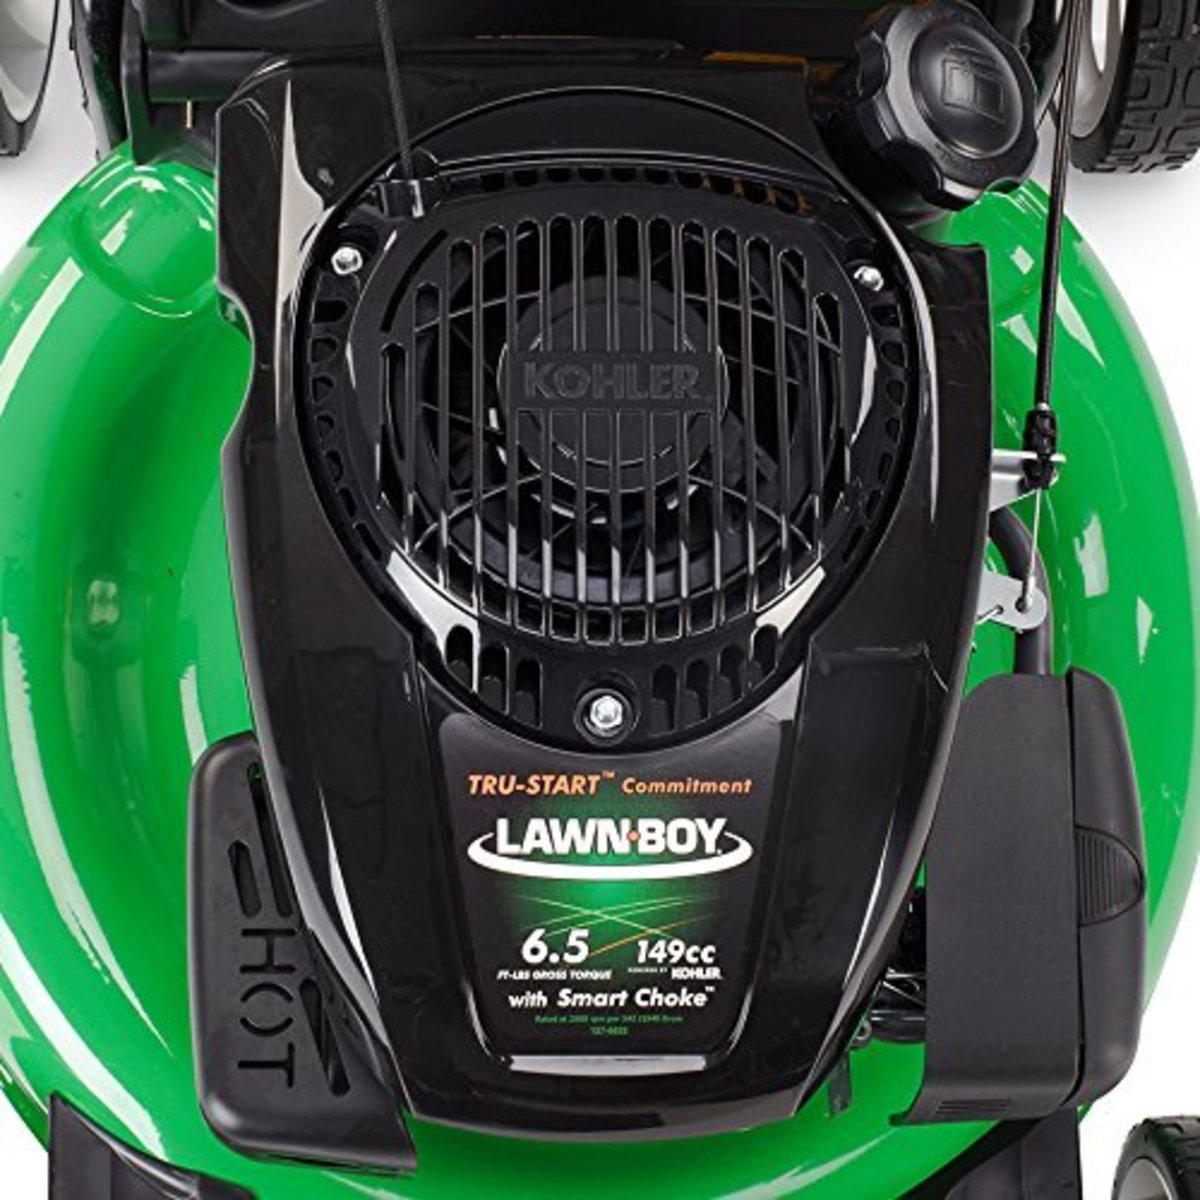 Lawn-Boy 10734 mowers are powered by Kohler engines which provide both power and reliability.  The Lawn Boy can be started up with just the turn of a key, making it easy and convenient to use.